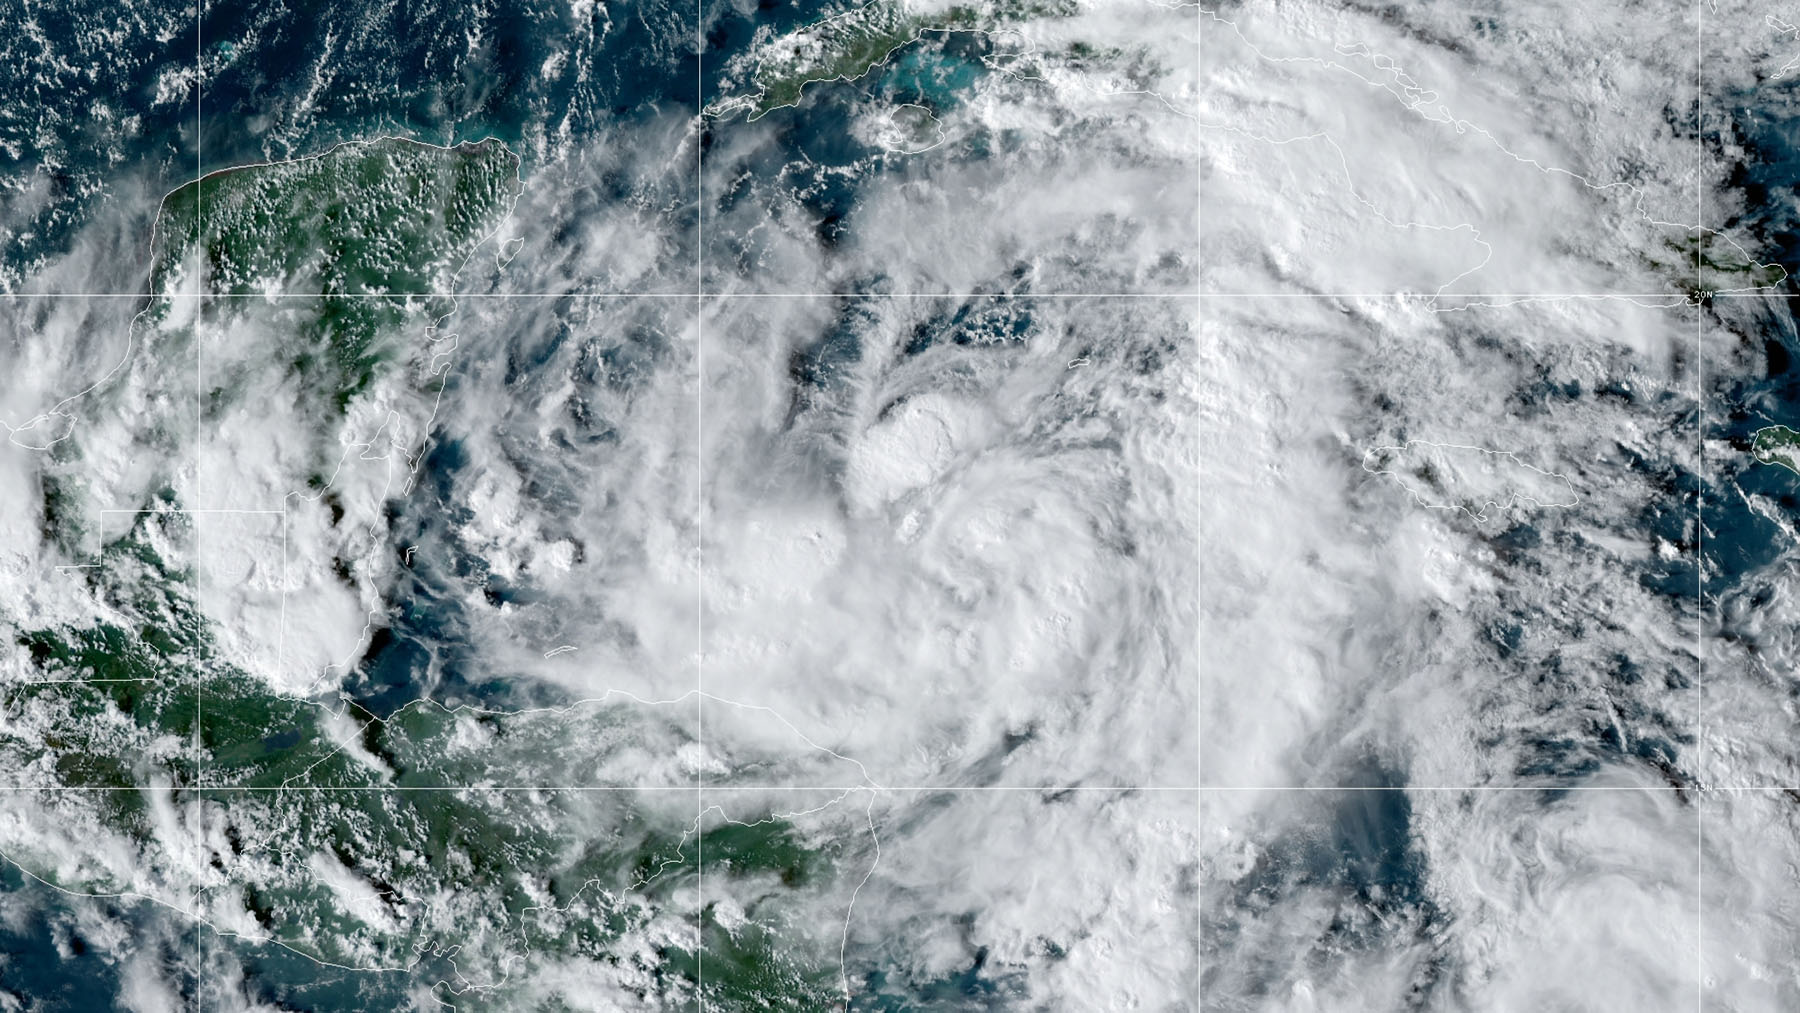 Hurricane Zeta churns through the Gulf of Mexico on Wednesday October 28, 2020. (NOAA Satellite Image)